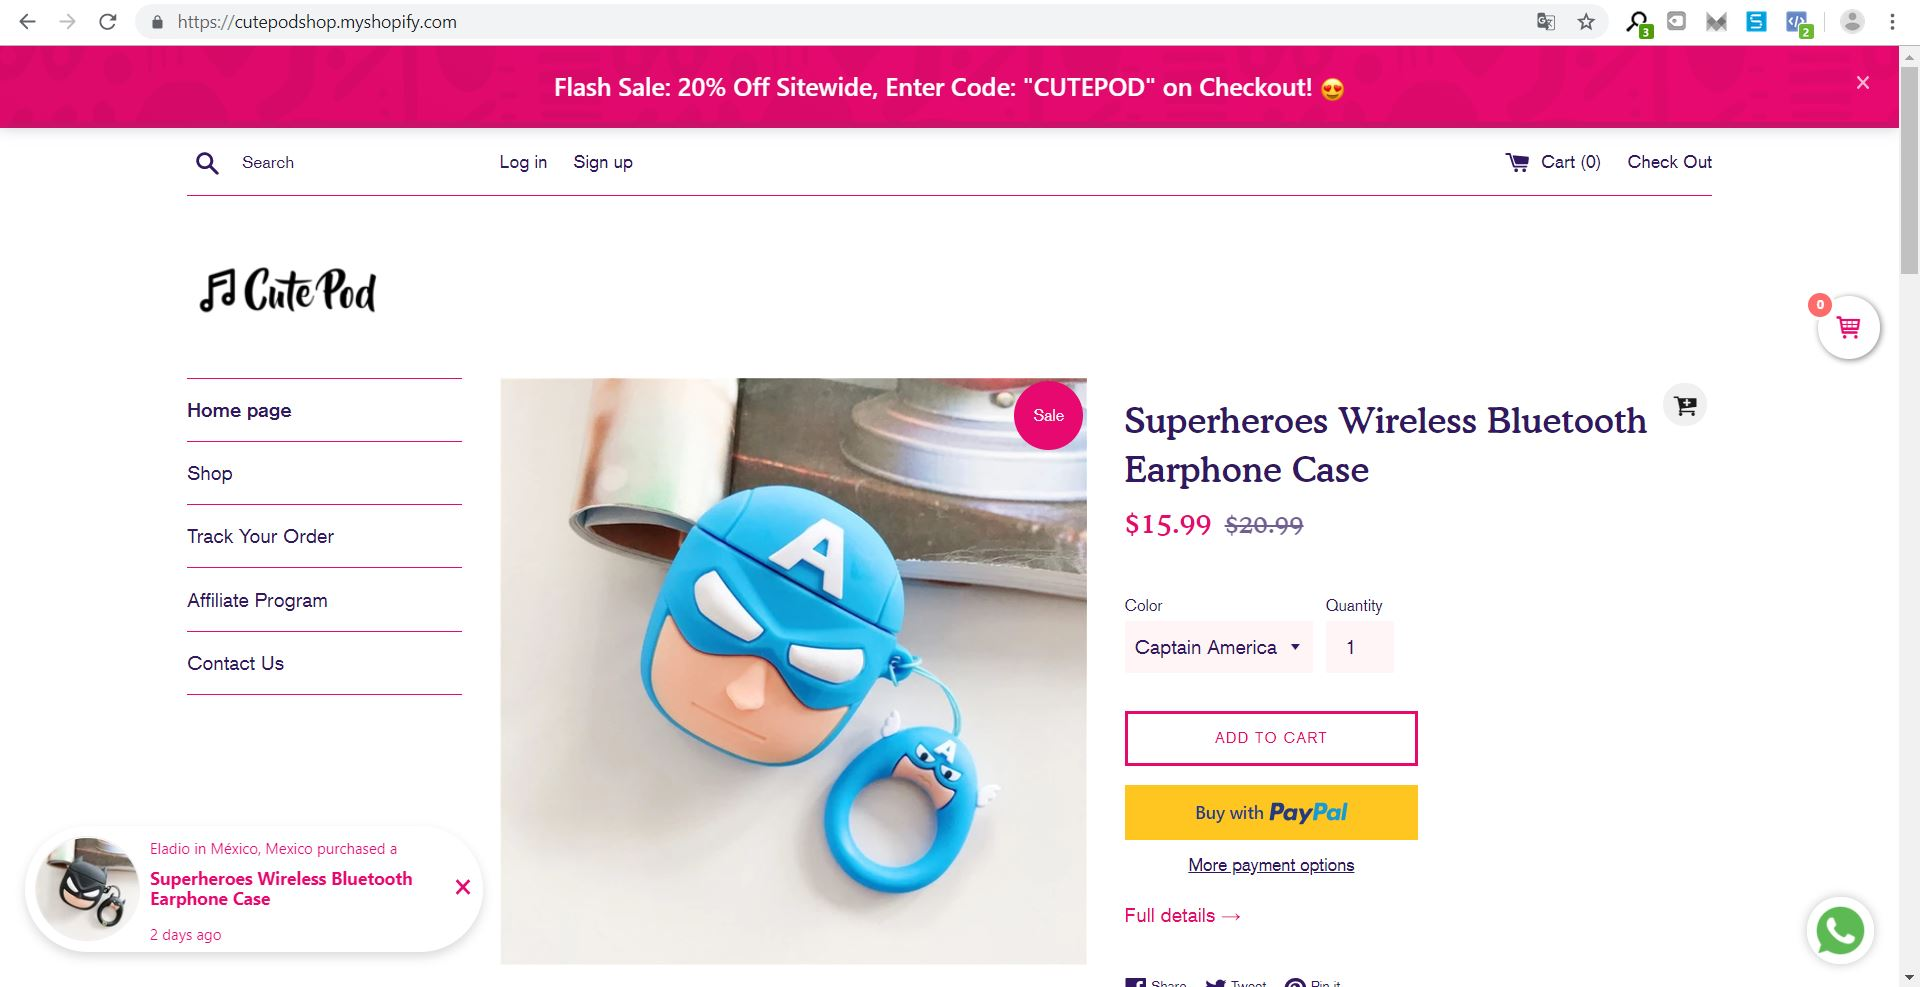 Cutepod Shop - Over 50+ Airpods' cases with original and